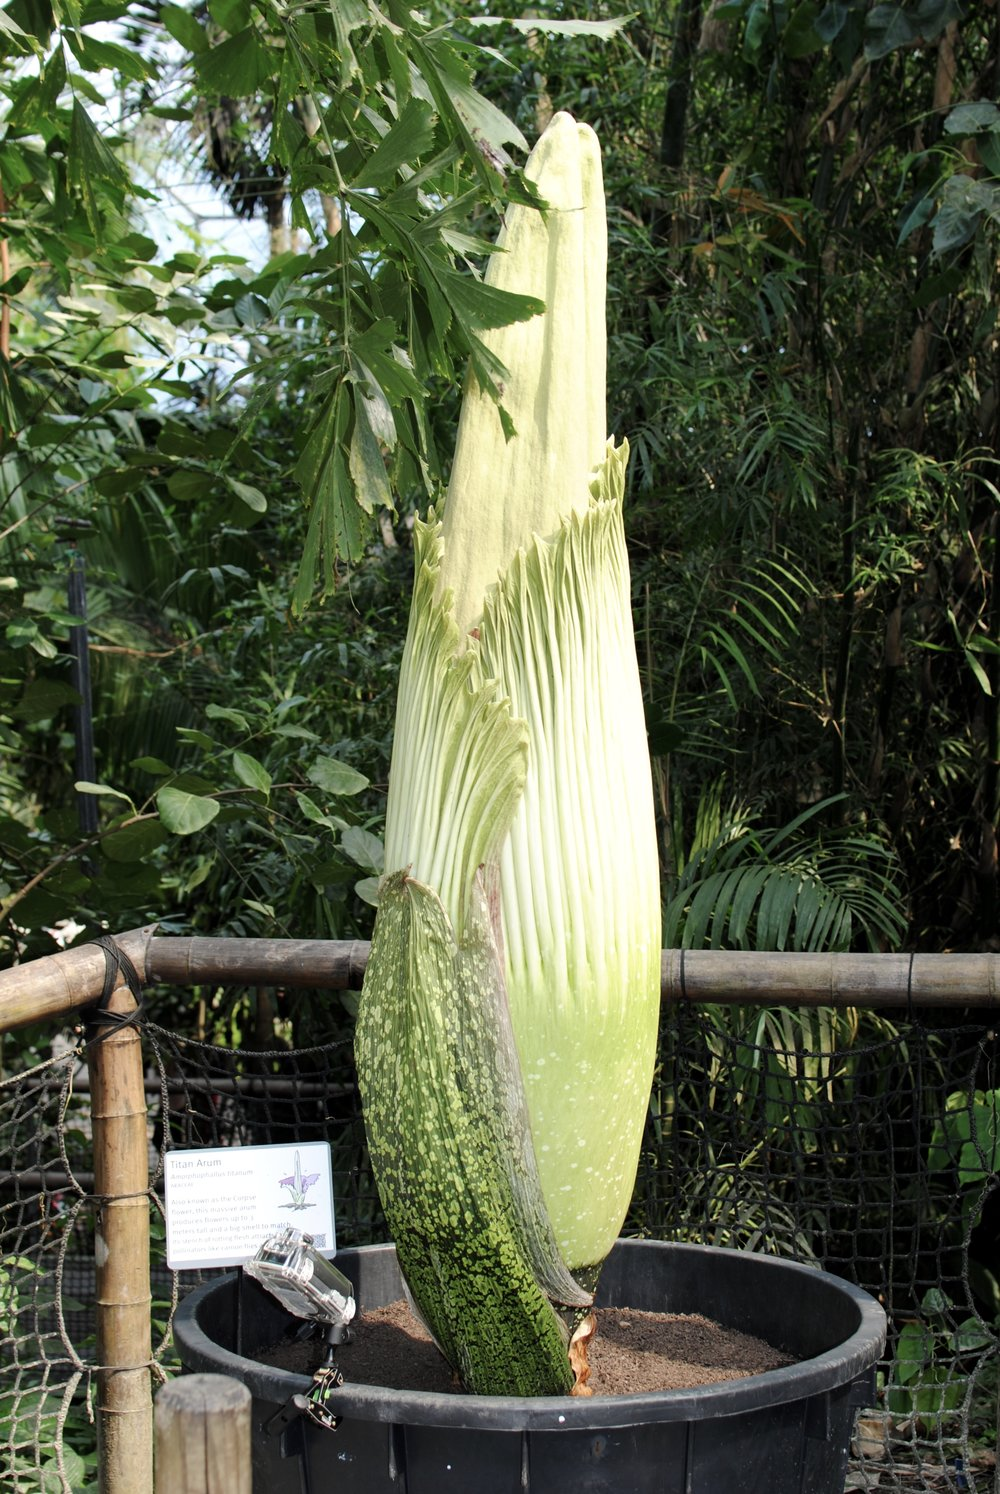 The Titan Atum is native to Indonesia and blossomed for the first time in Eden's rainforest in 2005.